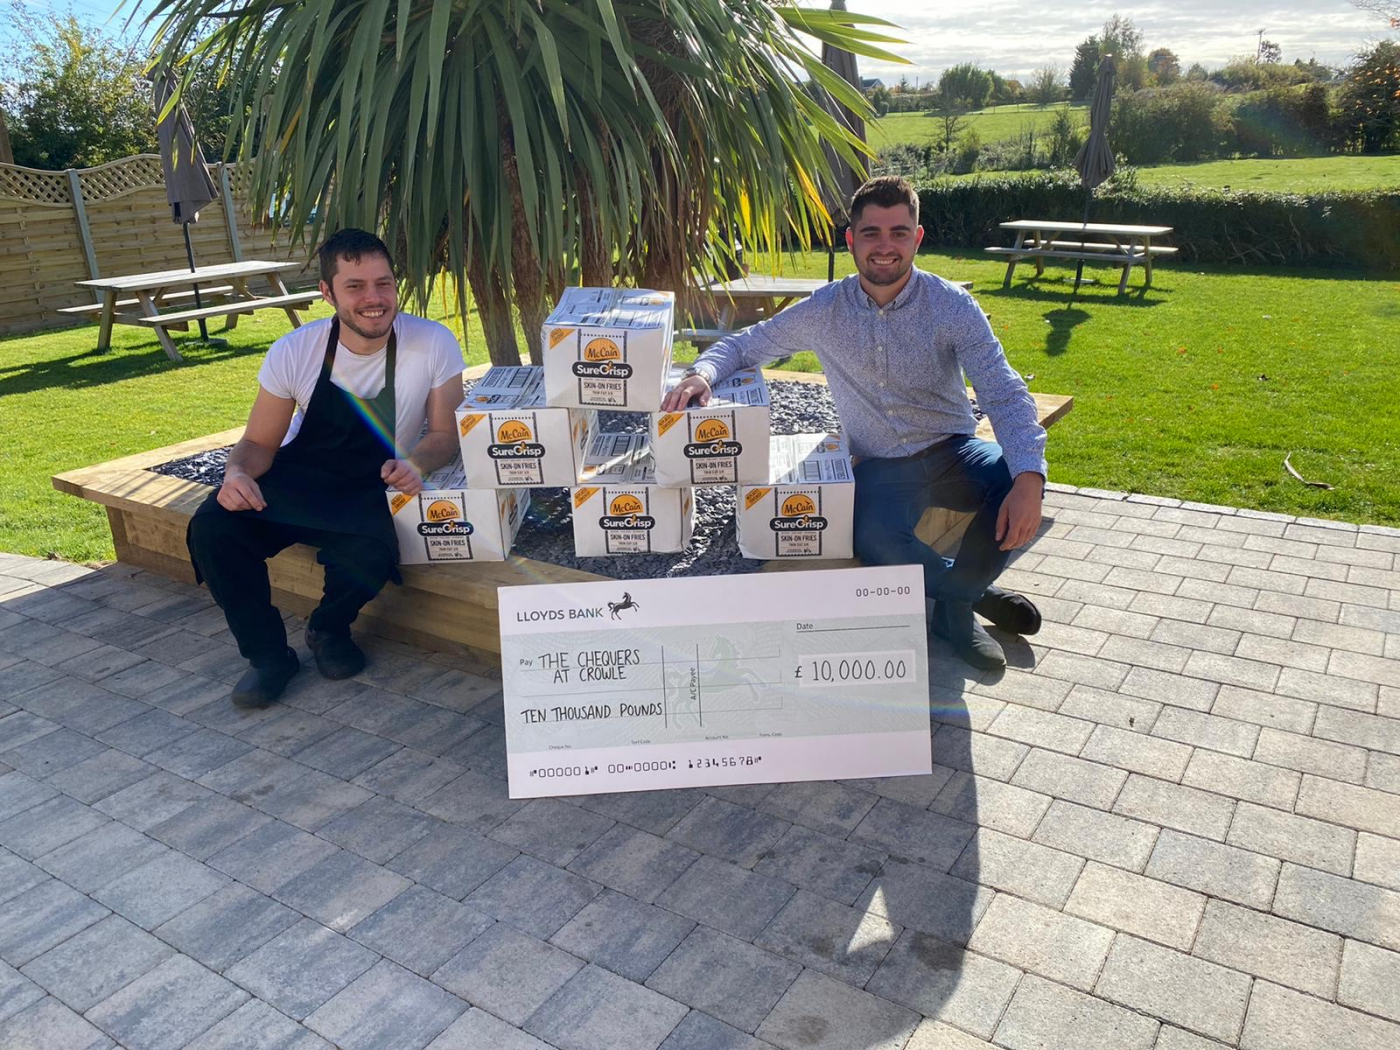 The Chequers at Crowle win £10,000 grand prize with McCain